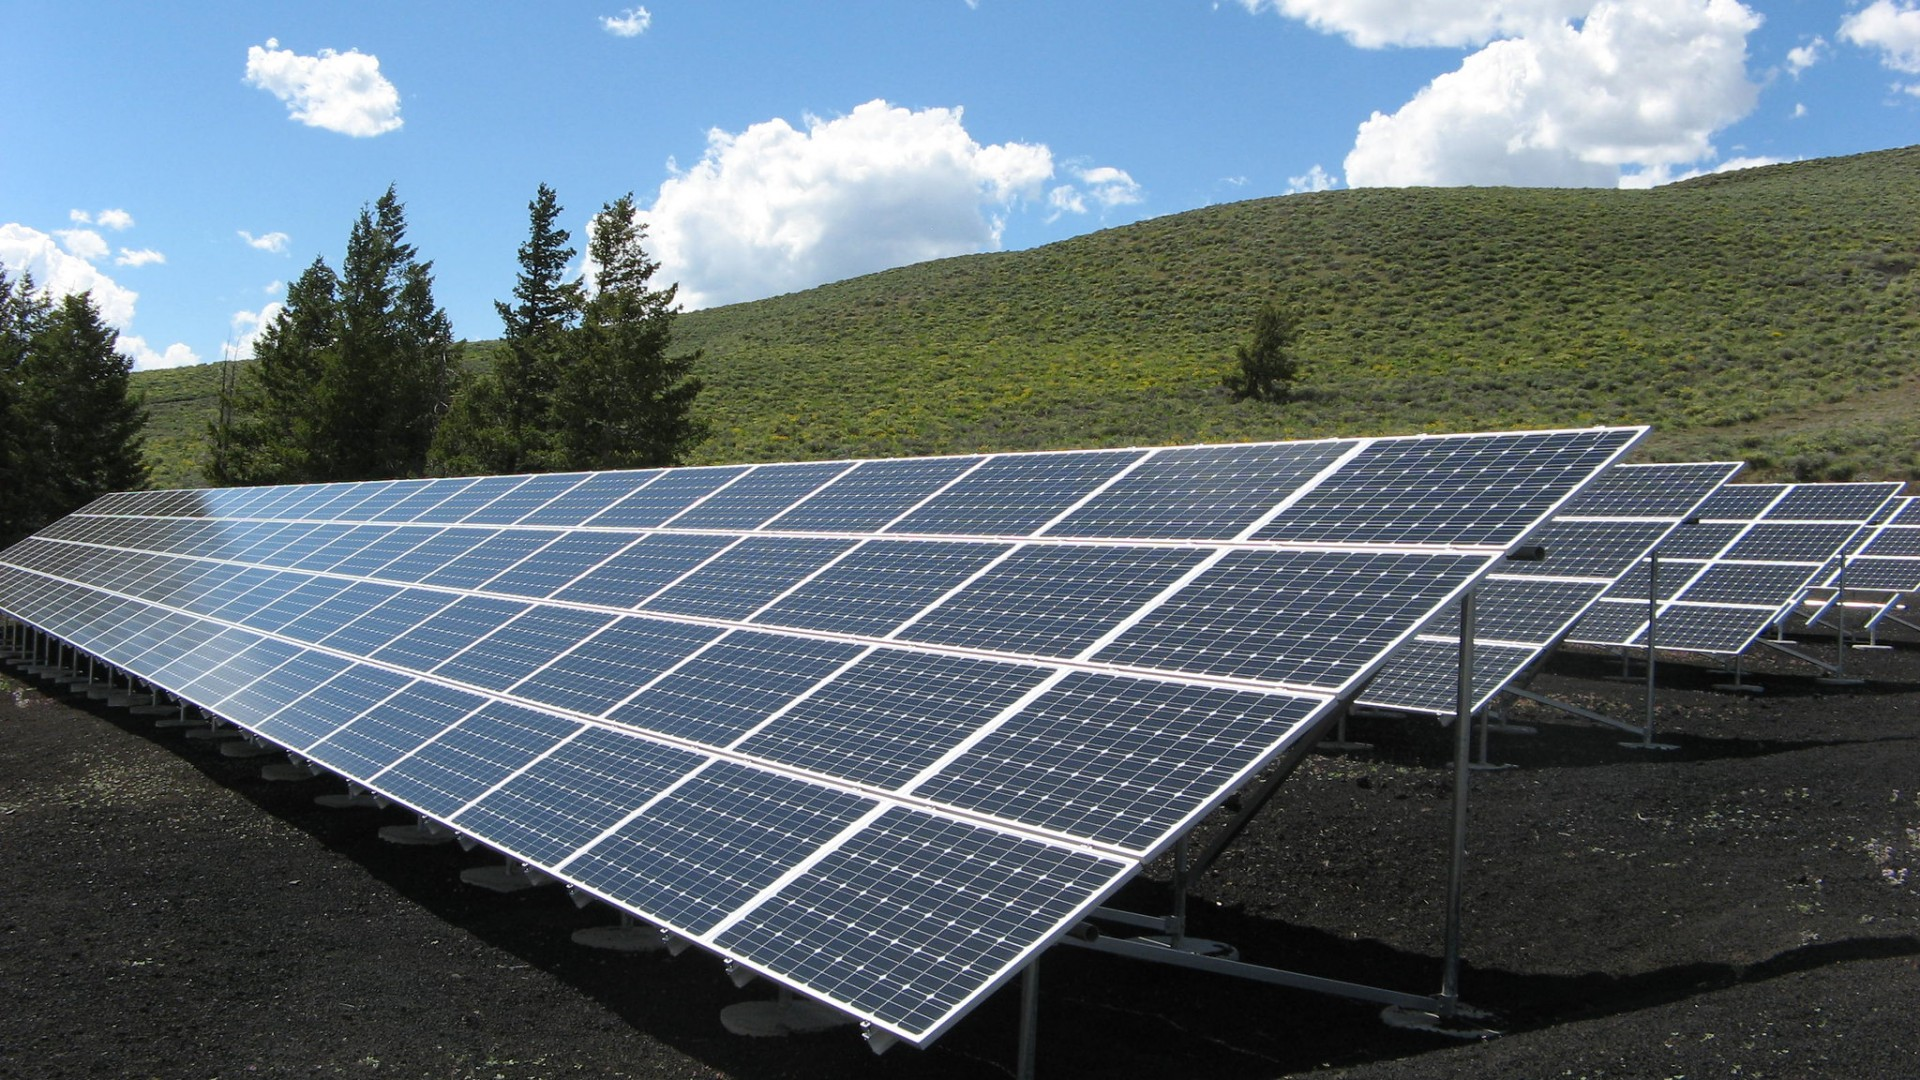 Once completed, the Florida Municipal Solar Project will generate enough clean energy to power 45,000 typical Florida homes. Image: Flickr - NPS Climate Change Response